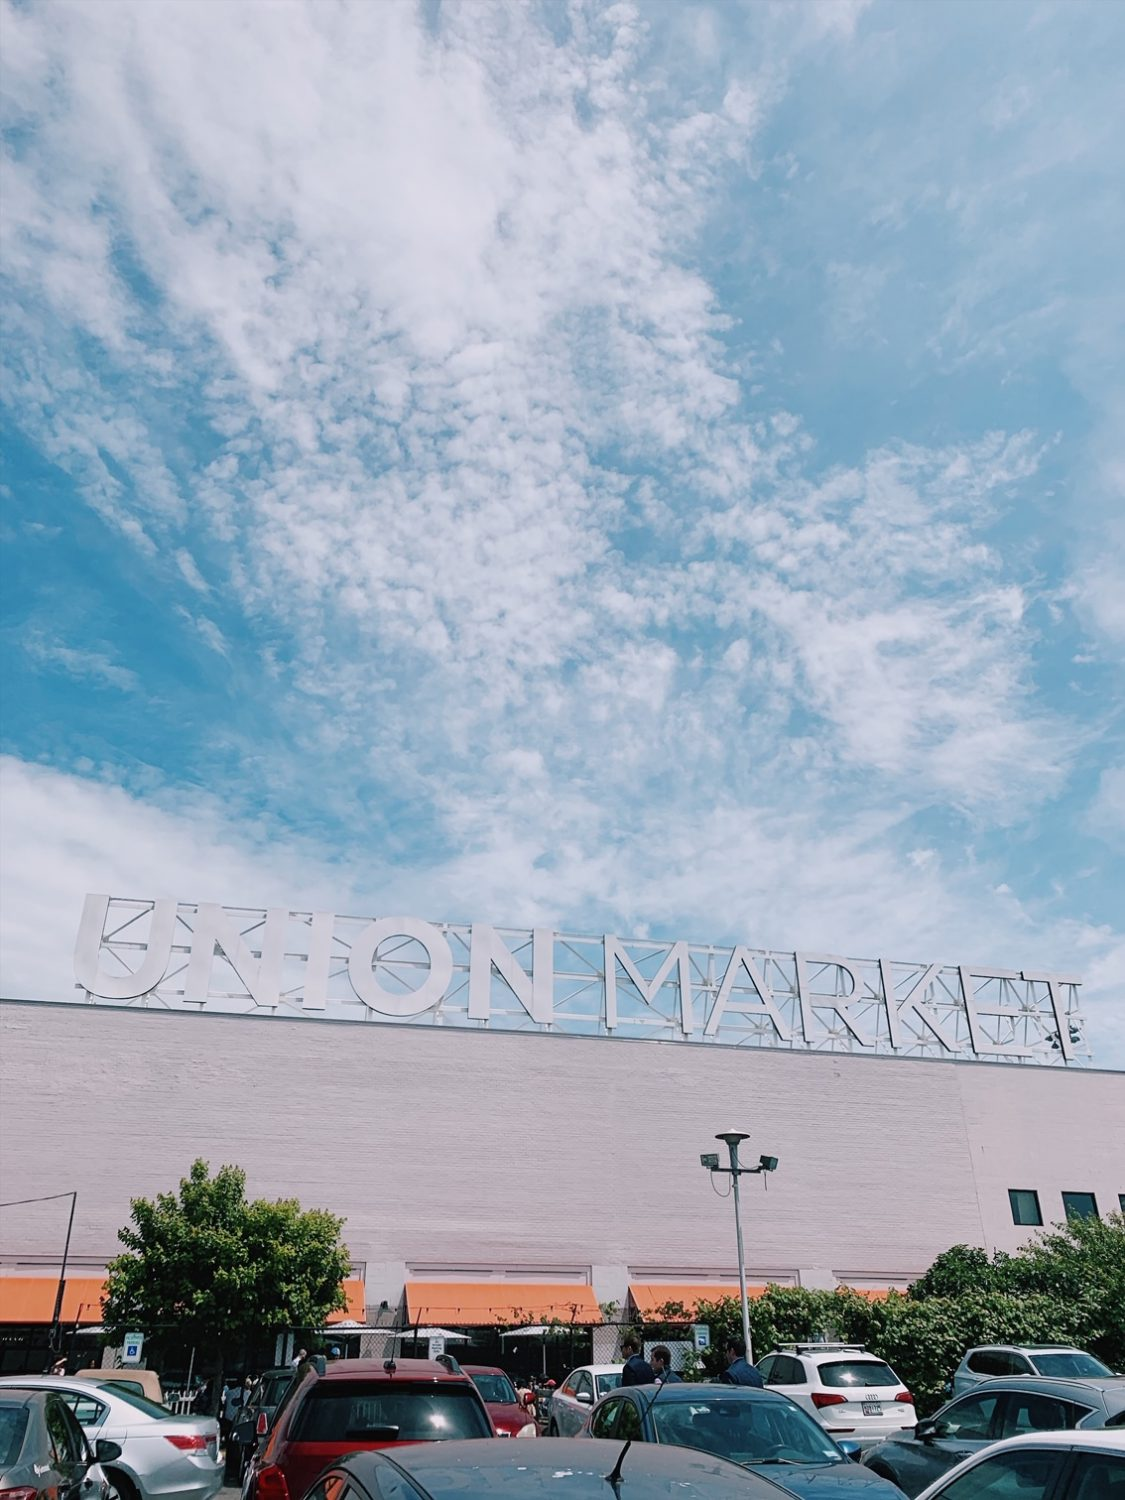 Union Market Washington DC